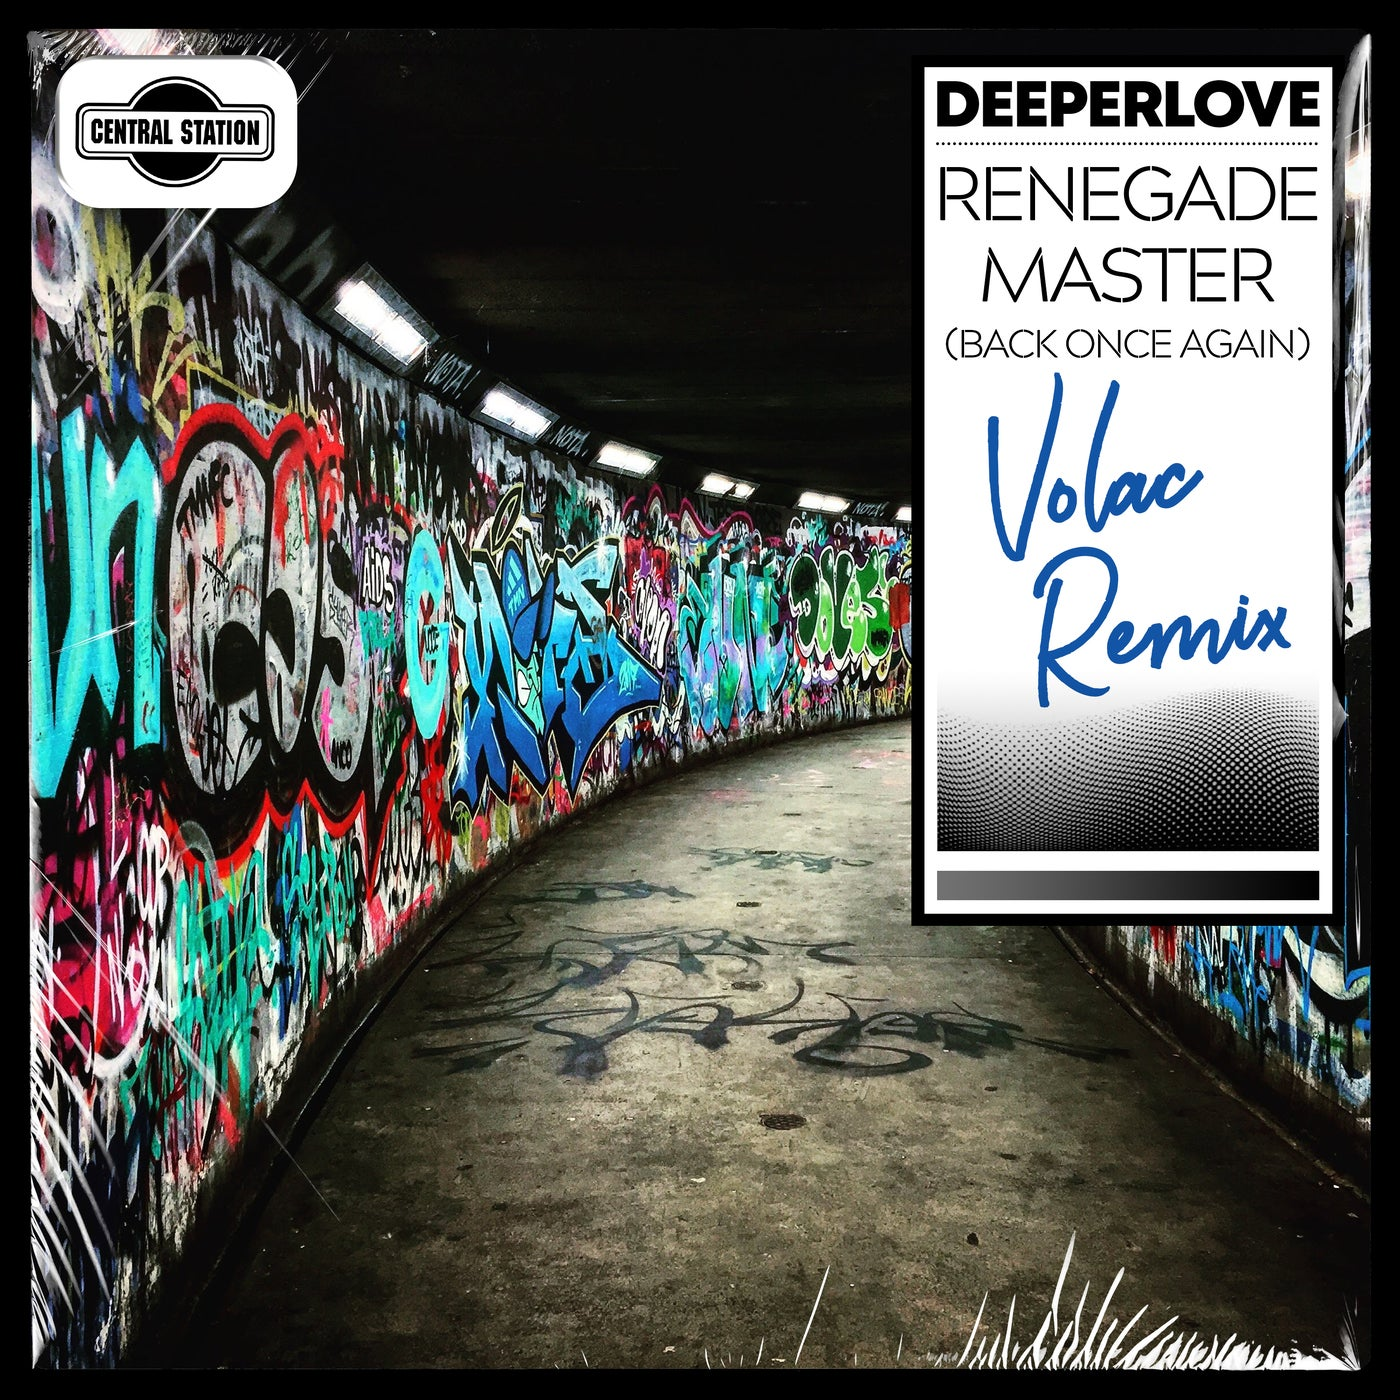 Renegade Master (Back Once Again) (Volac Extended Remix)